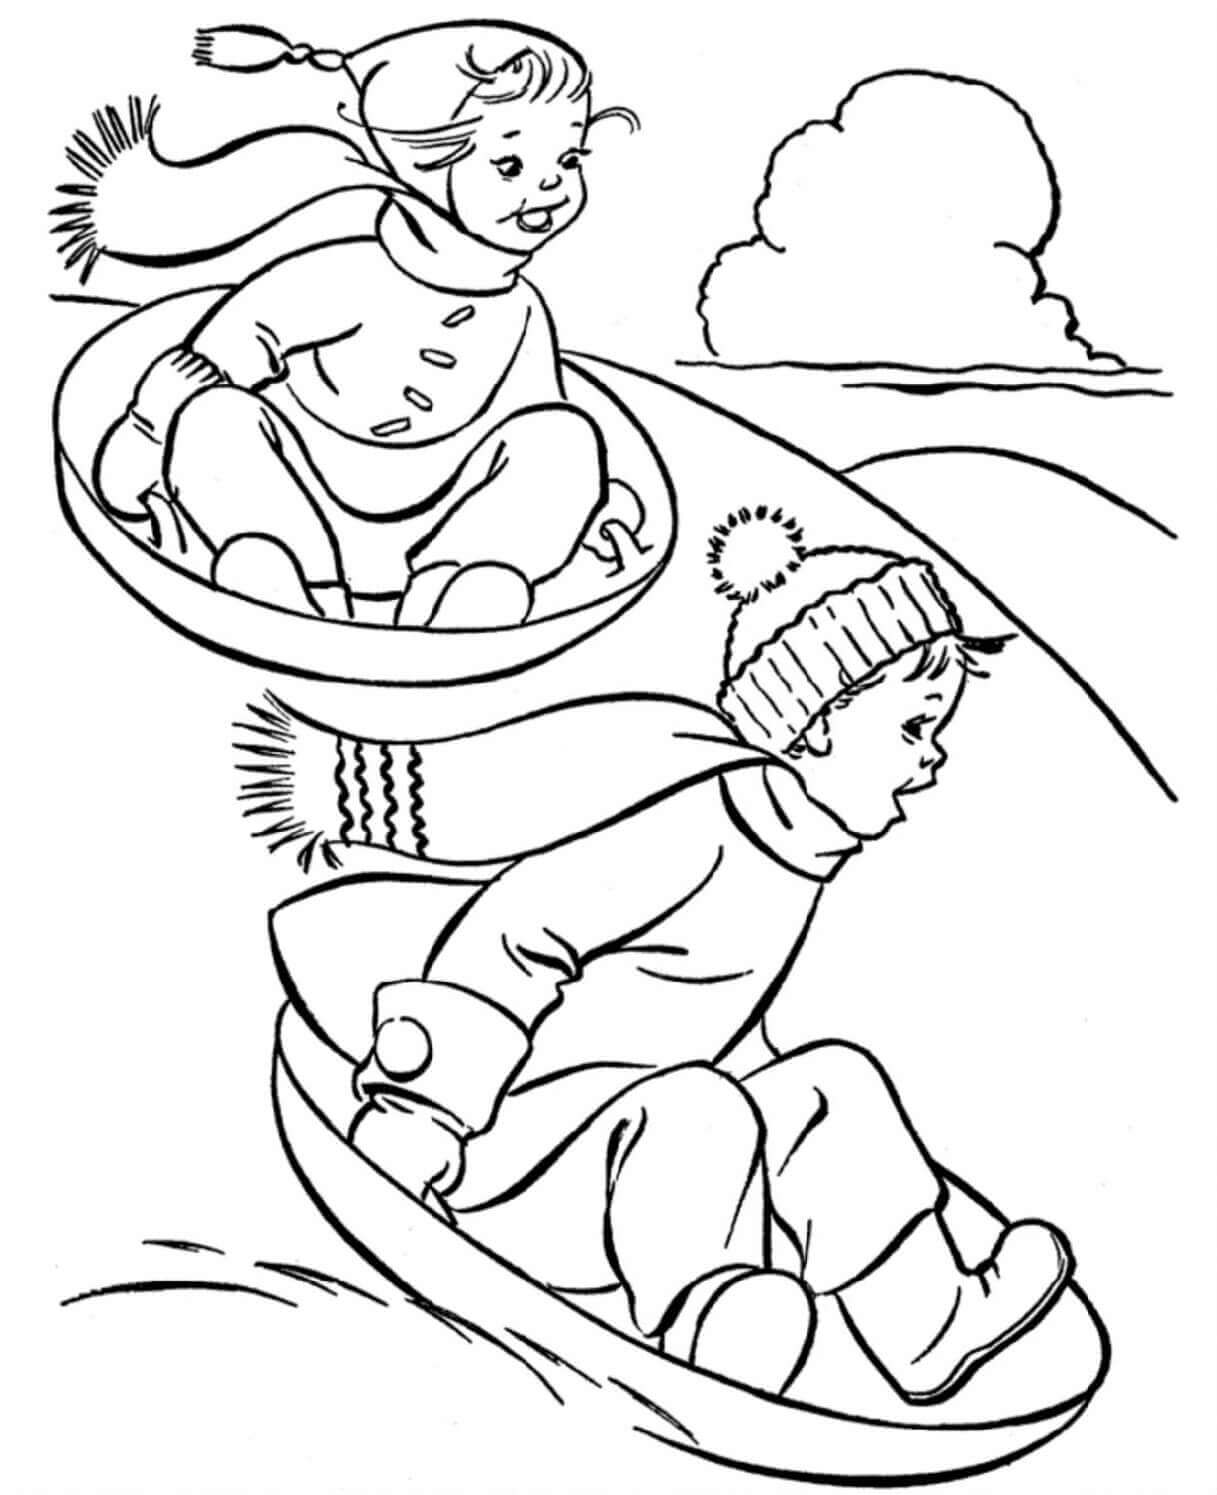 winter coloring sheets printable winter season coloring pages crafts and worksheets for coloring winter sheets printable